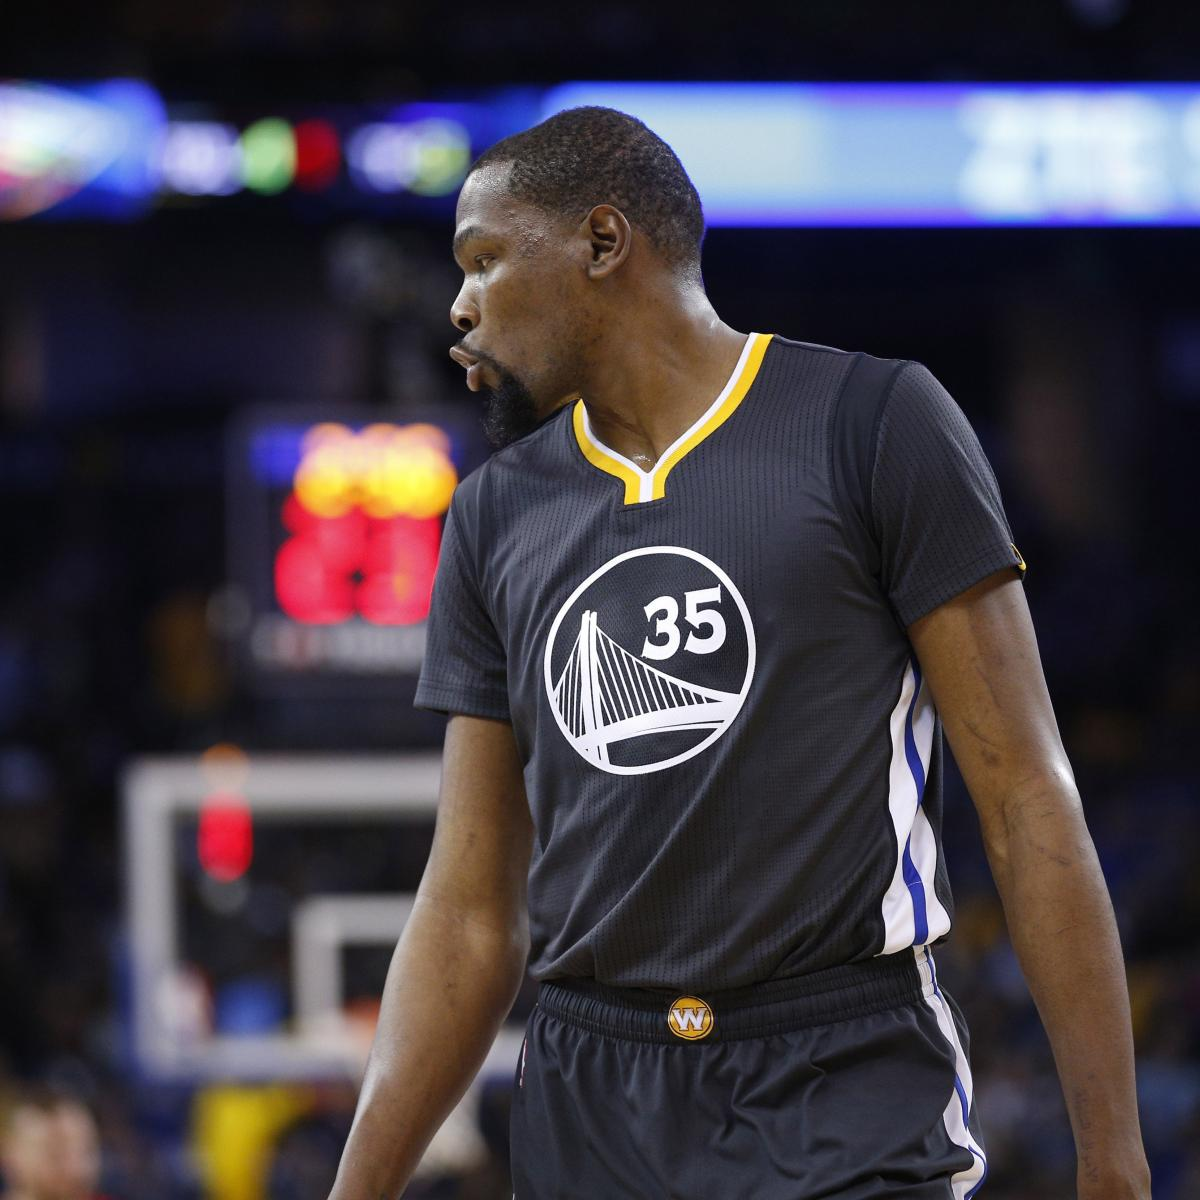 Warriors Come Out To Play Bleacher Report: Kevin Durant Out For Warriors Vs. Timberwolves Due To